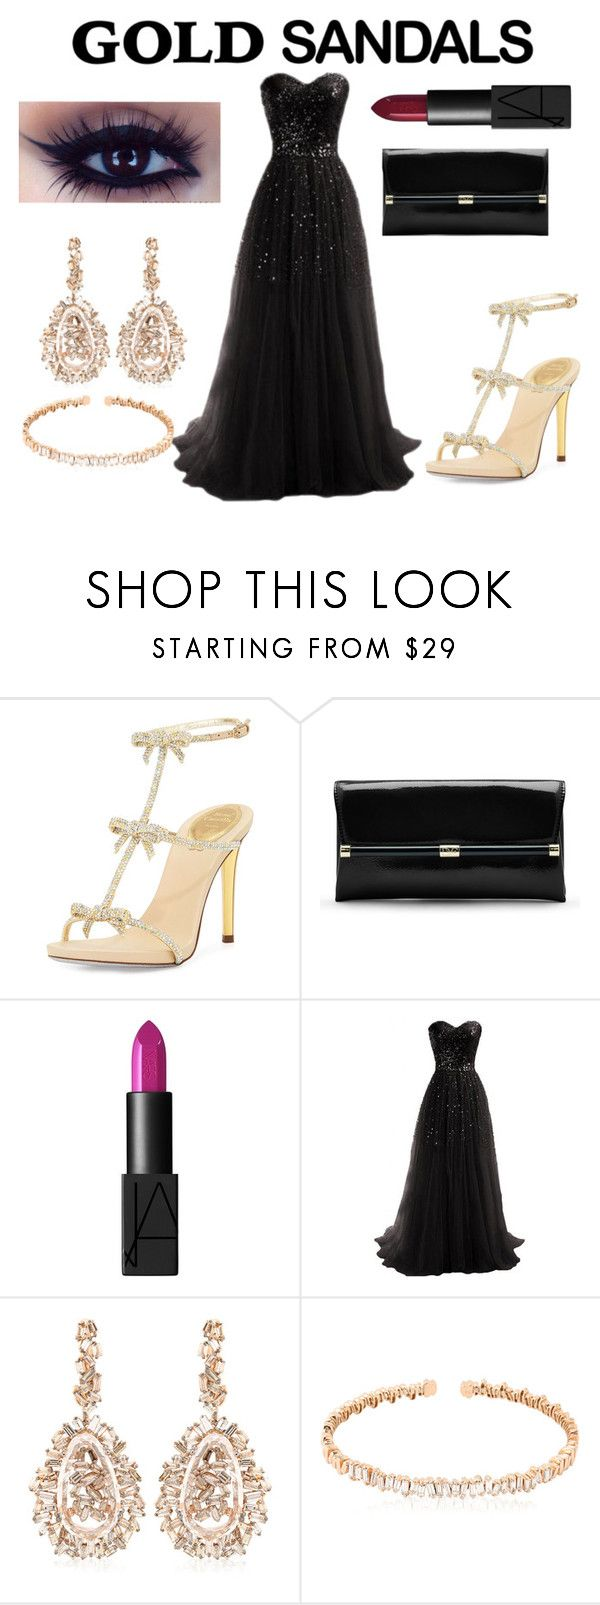 """""""Gold Sandals"""" by elizabethsthename ❤ liked on Polyvore featuring René Caovilla, Diane Von Furstenberg, NARS Cosmetics, Suzanne Kalan and goldsandals"""